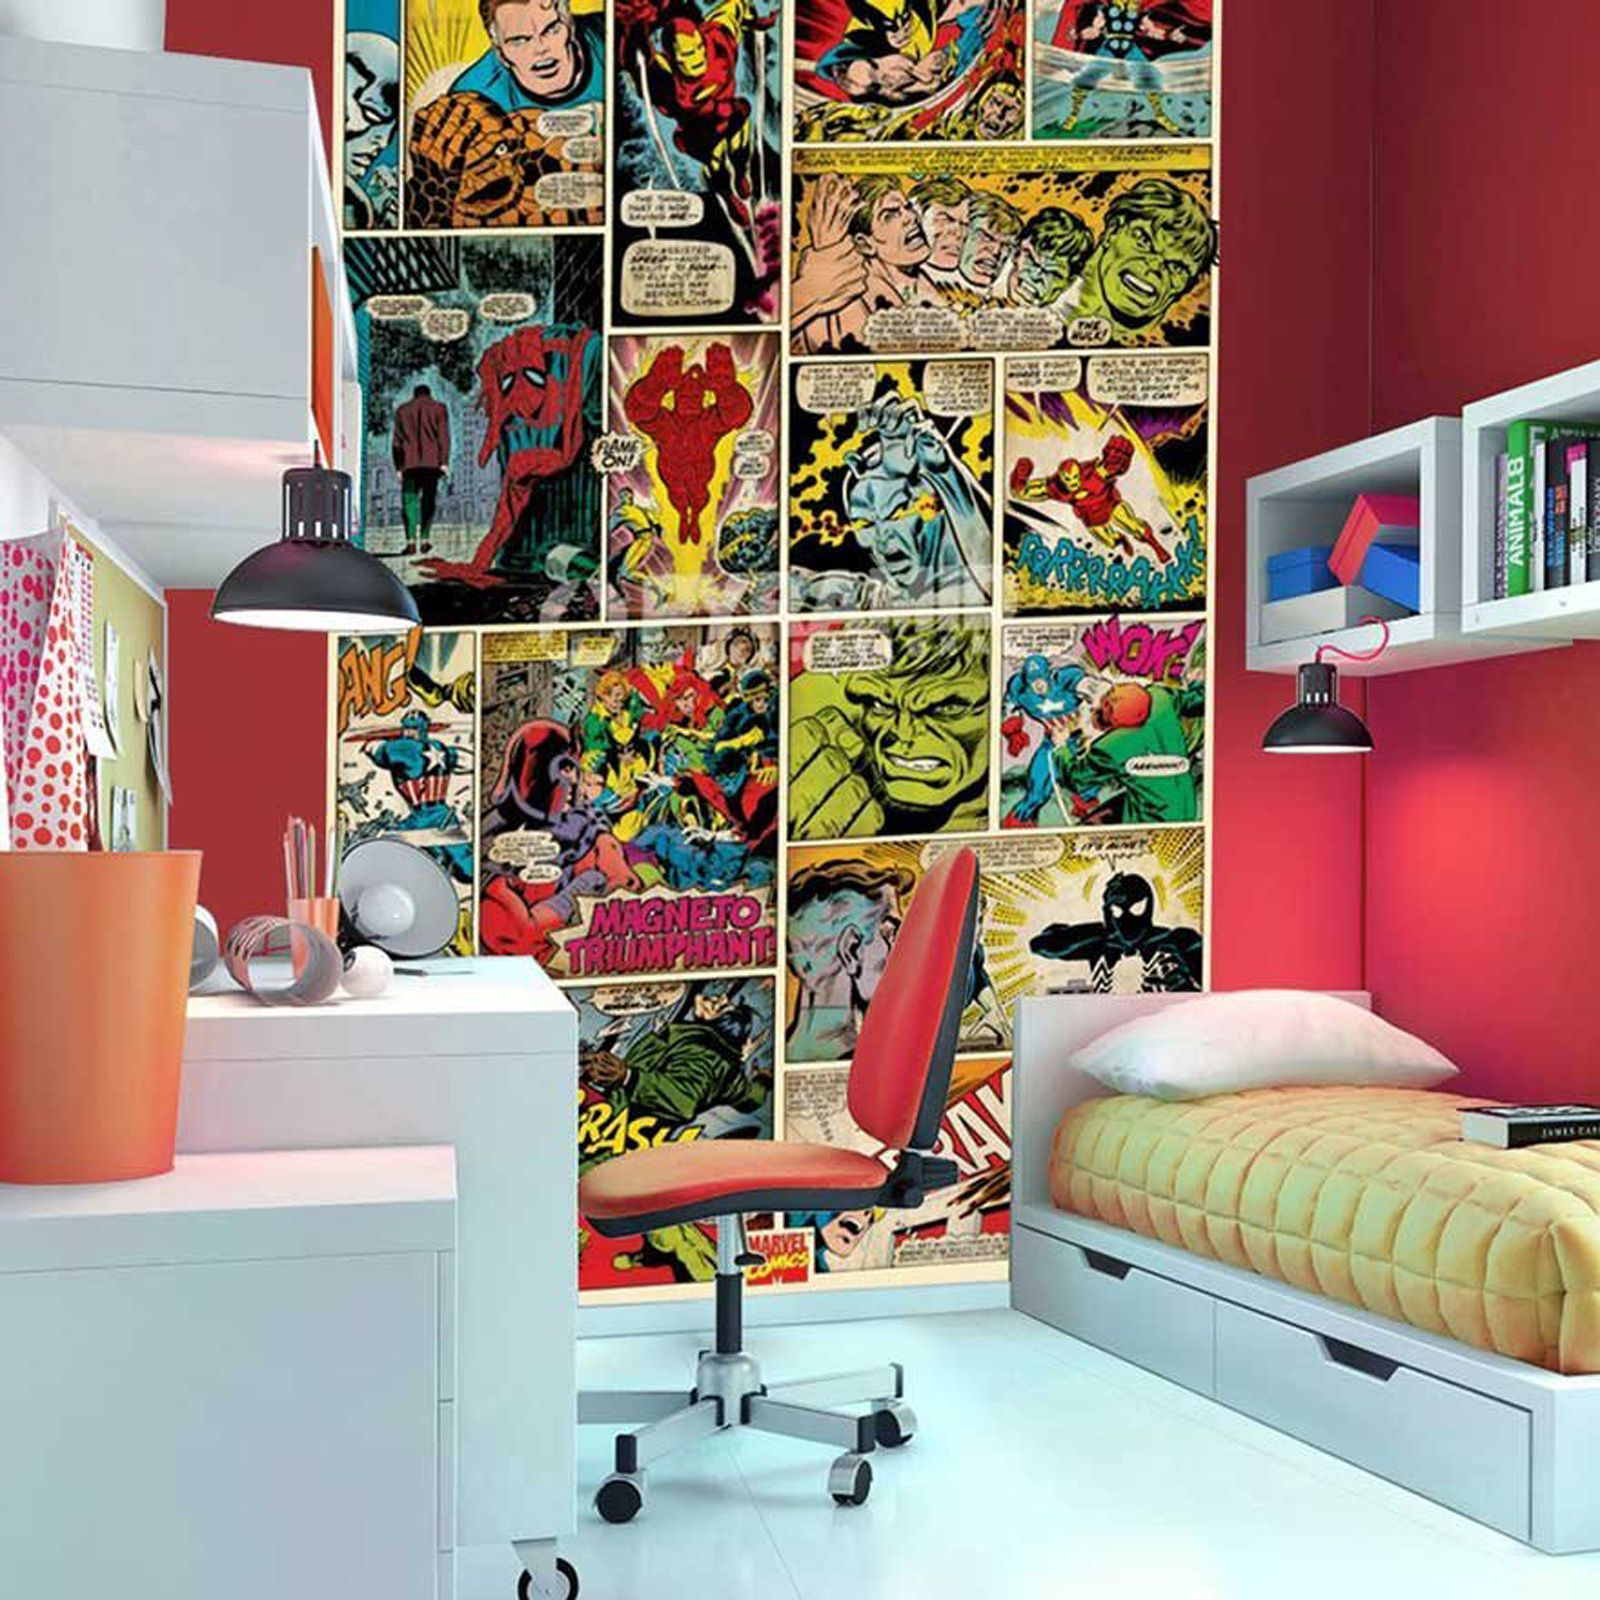 Wallpaper Design For Bedroom: MARVEL COMICS AND AVENGERS WALLPAPER WALL MURALS DÉCOR